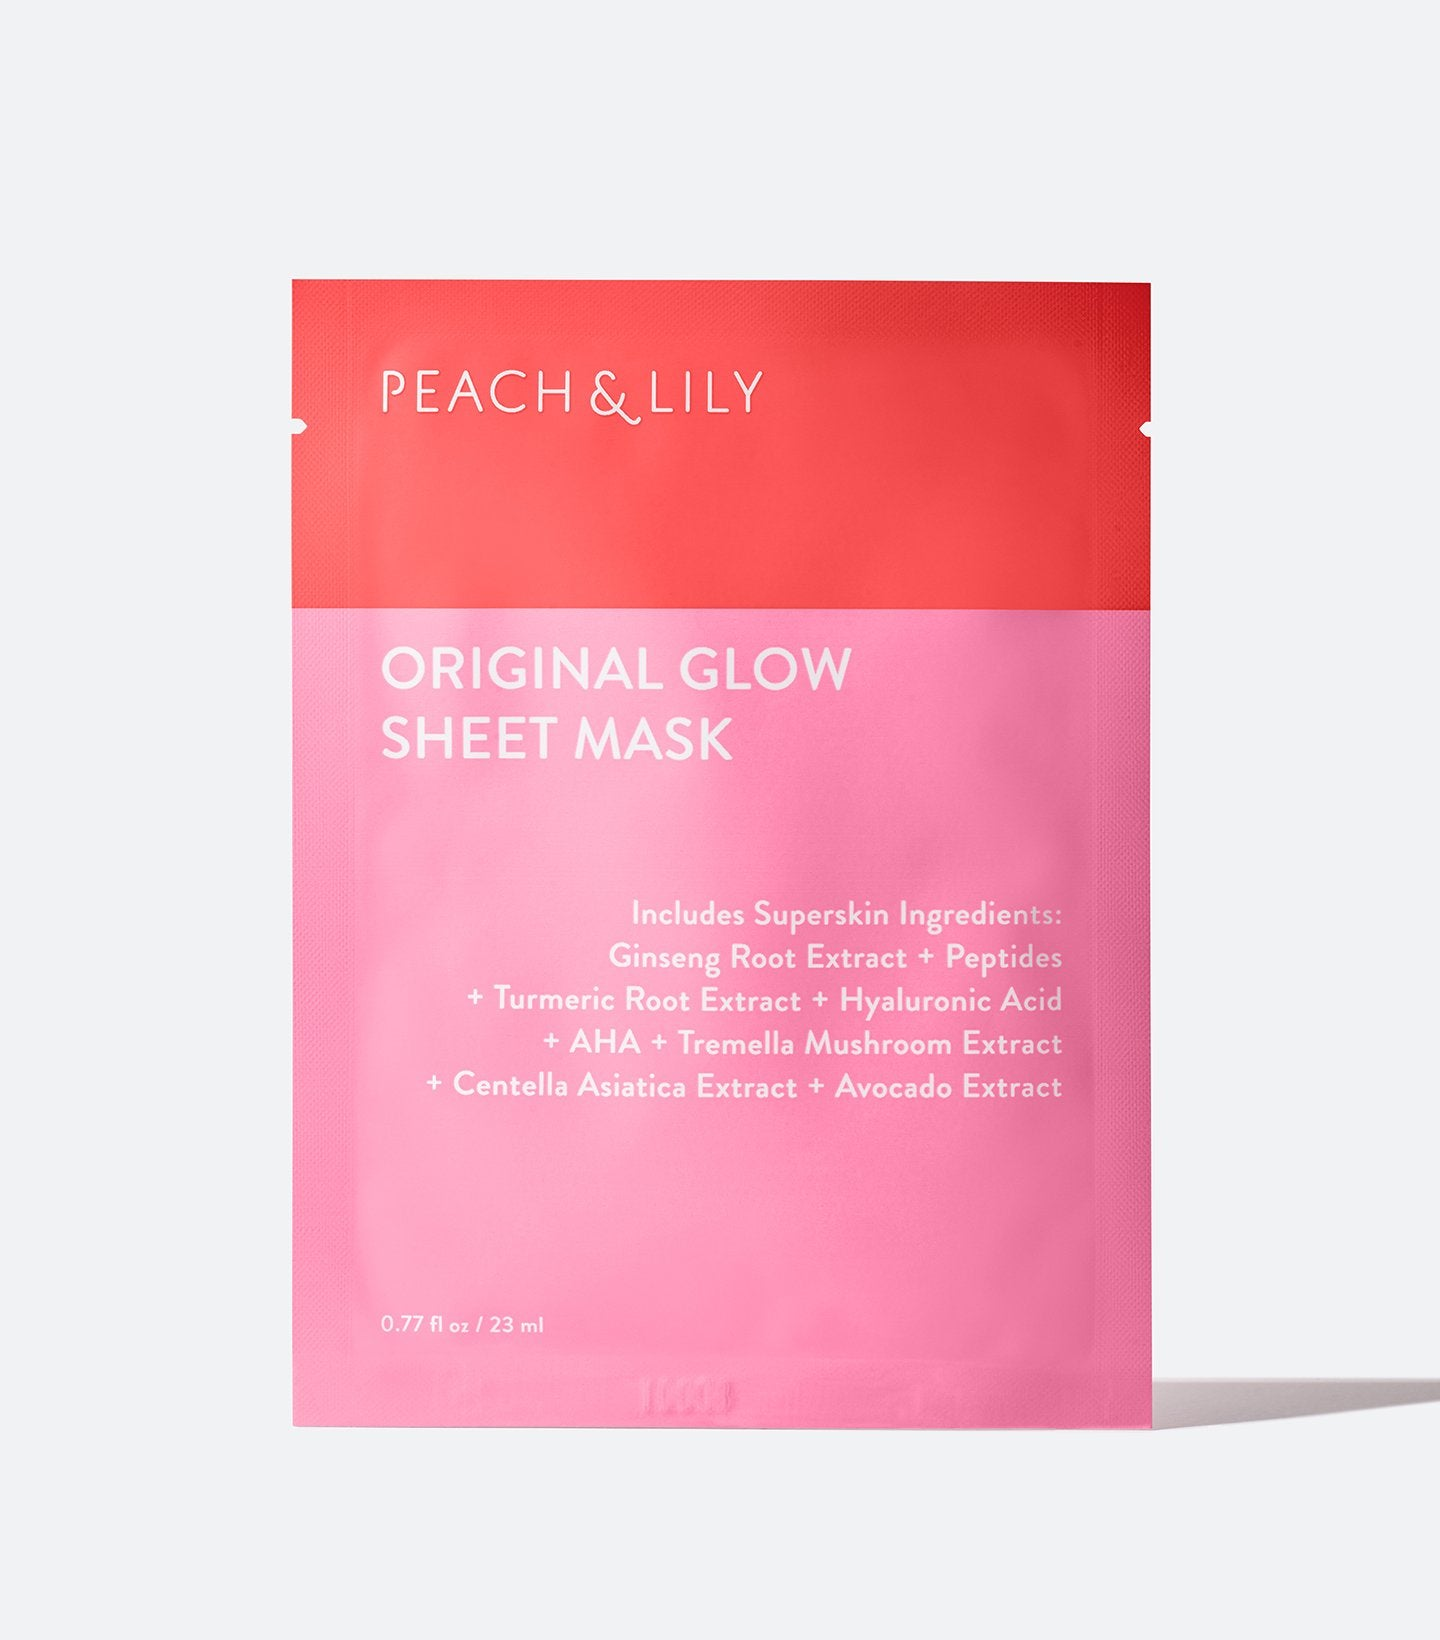 Original Glow Sheet Mask